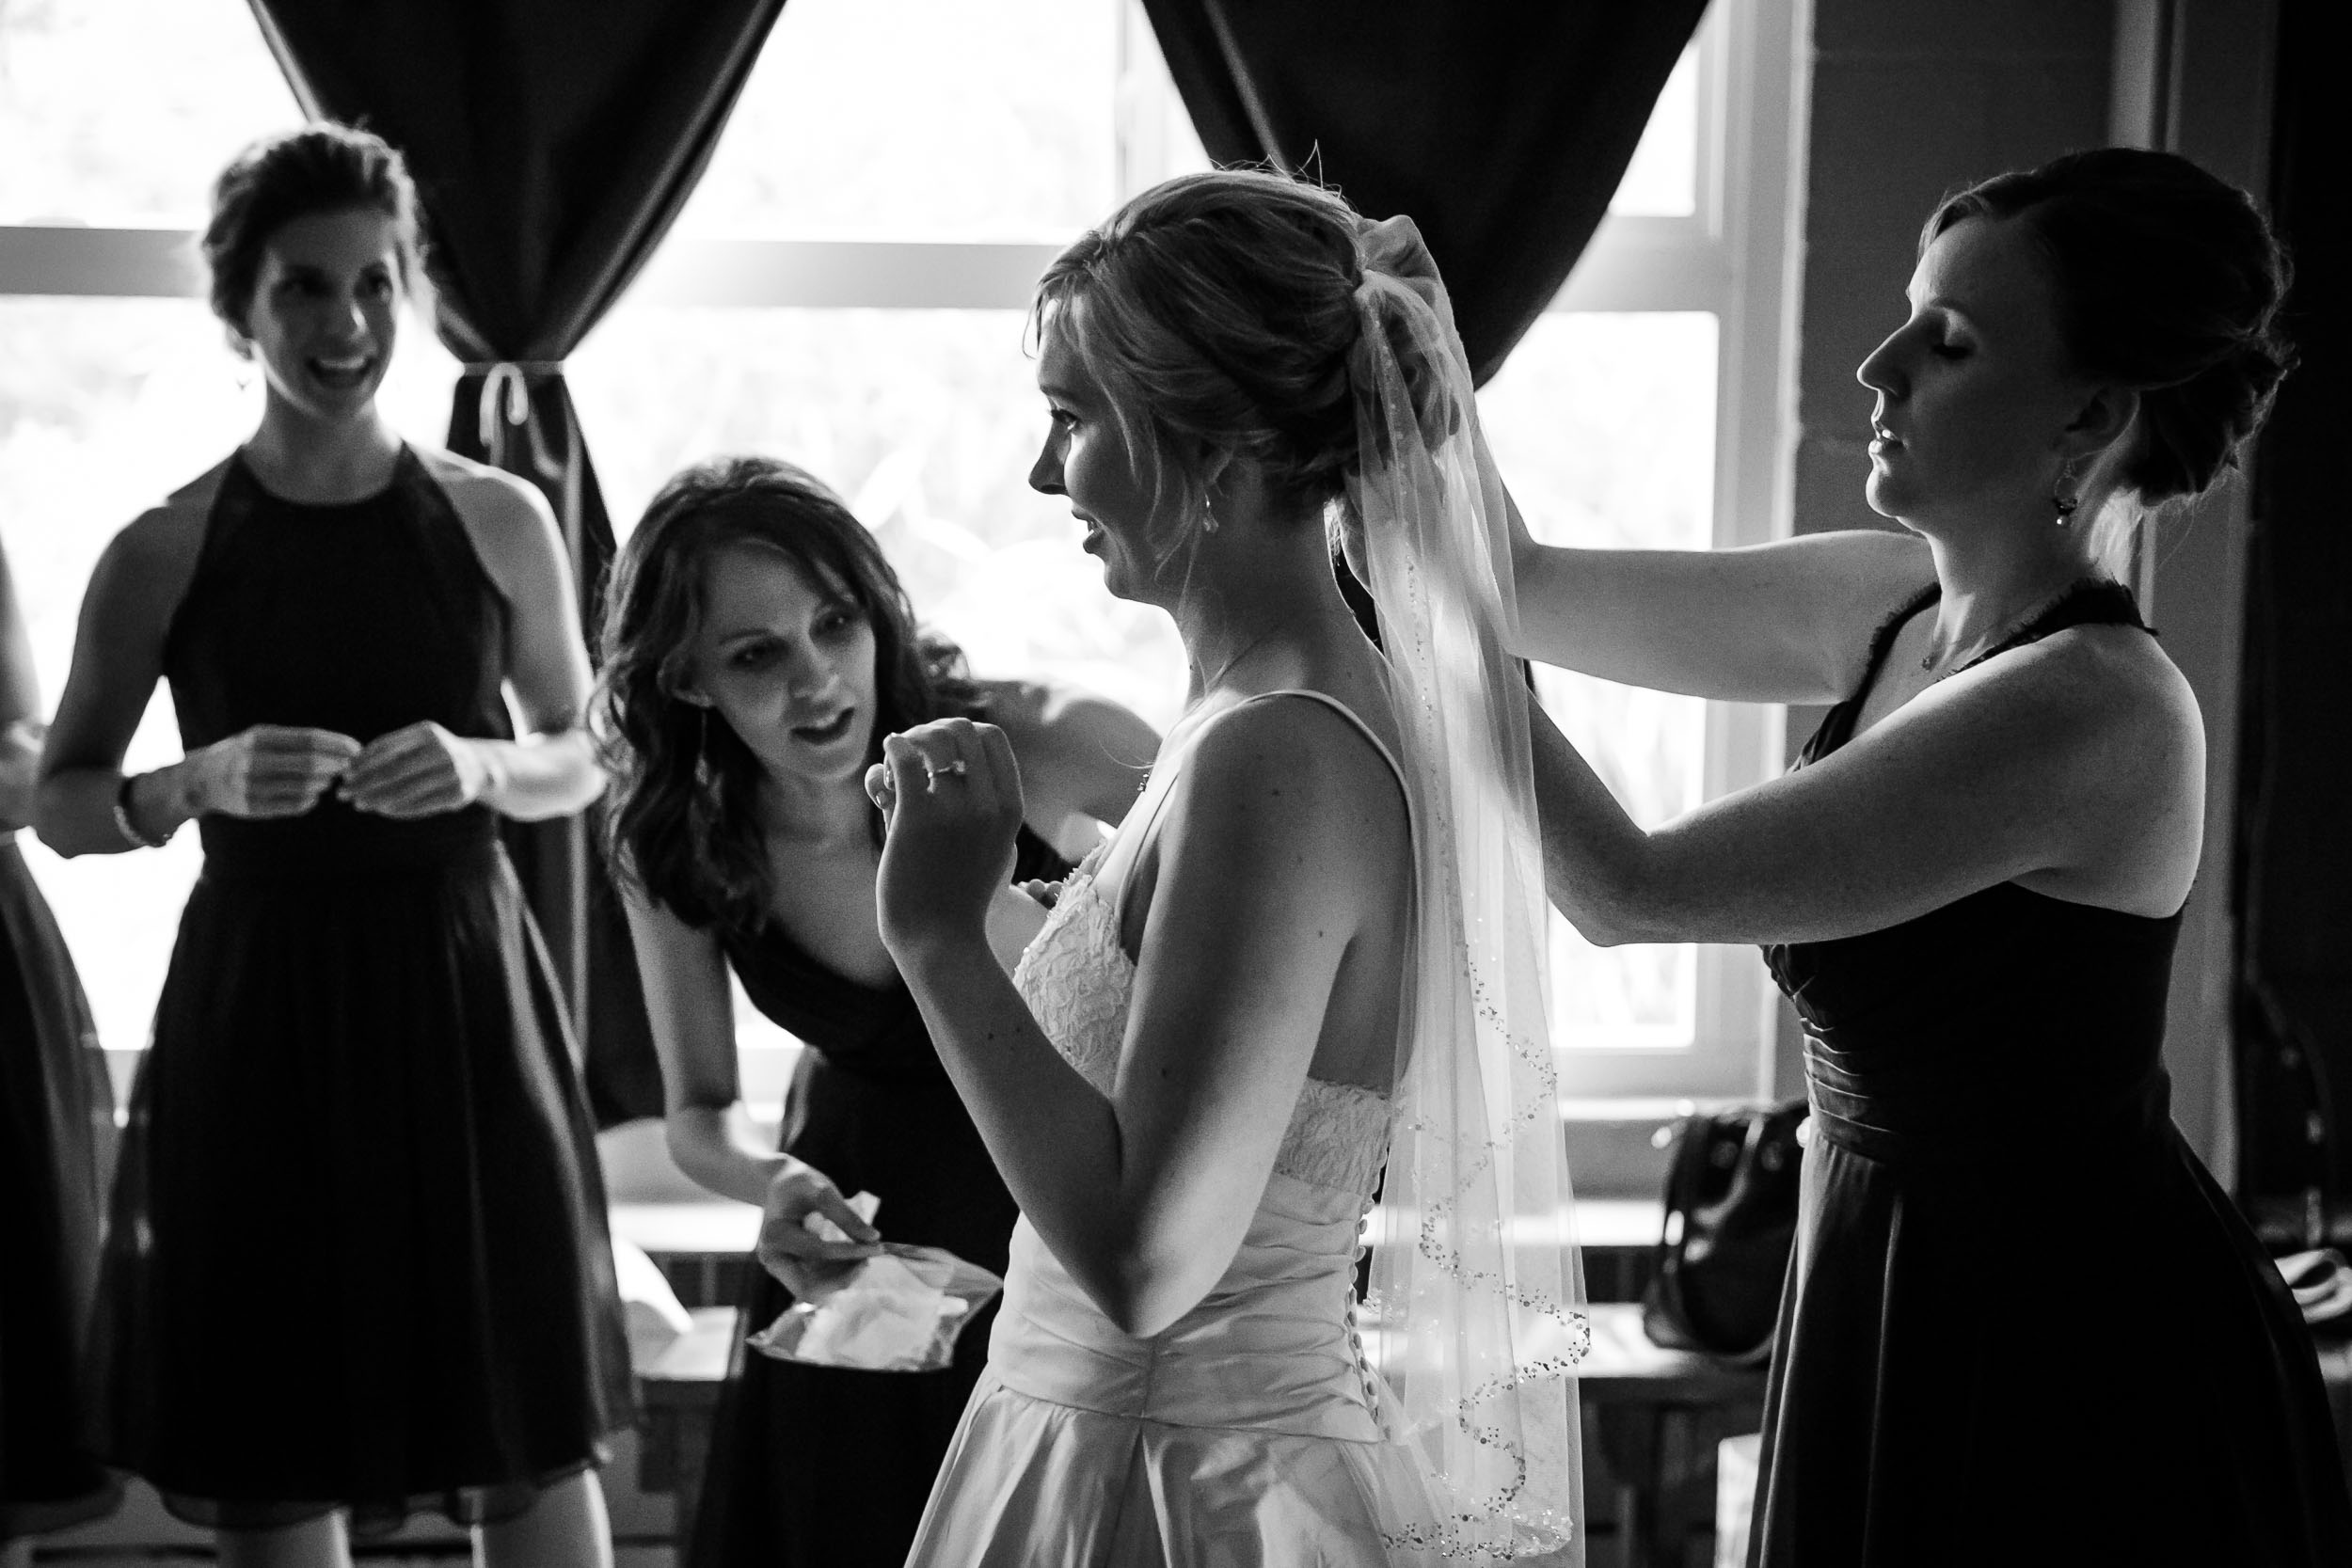 Seattle Community Church Wedding Photography | By G. Lin Photography | Gorgeous shot of bridesmaid pinning veil on bride